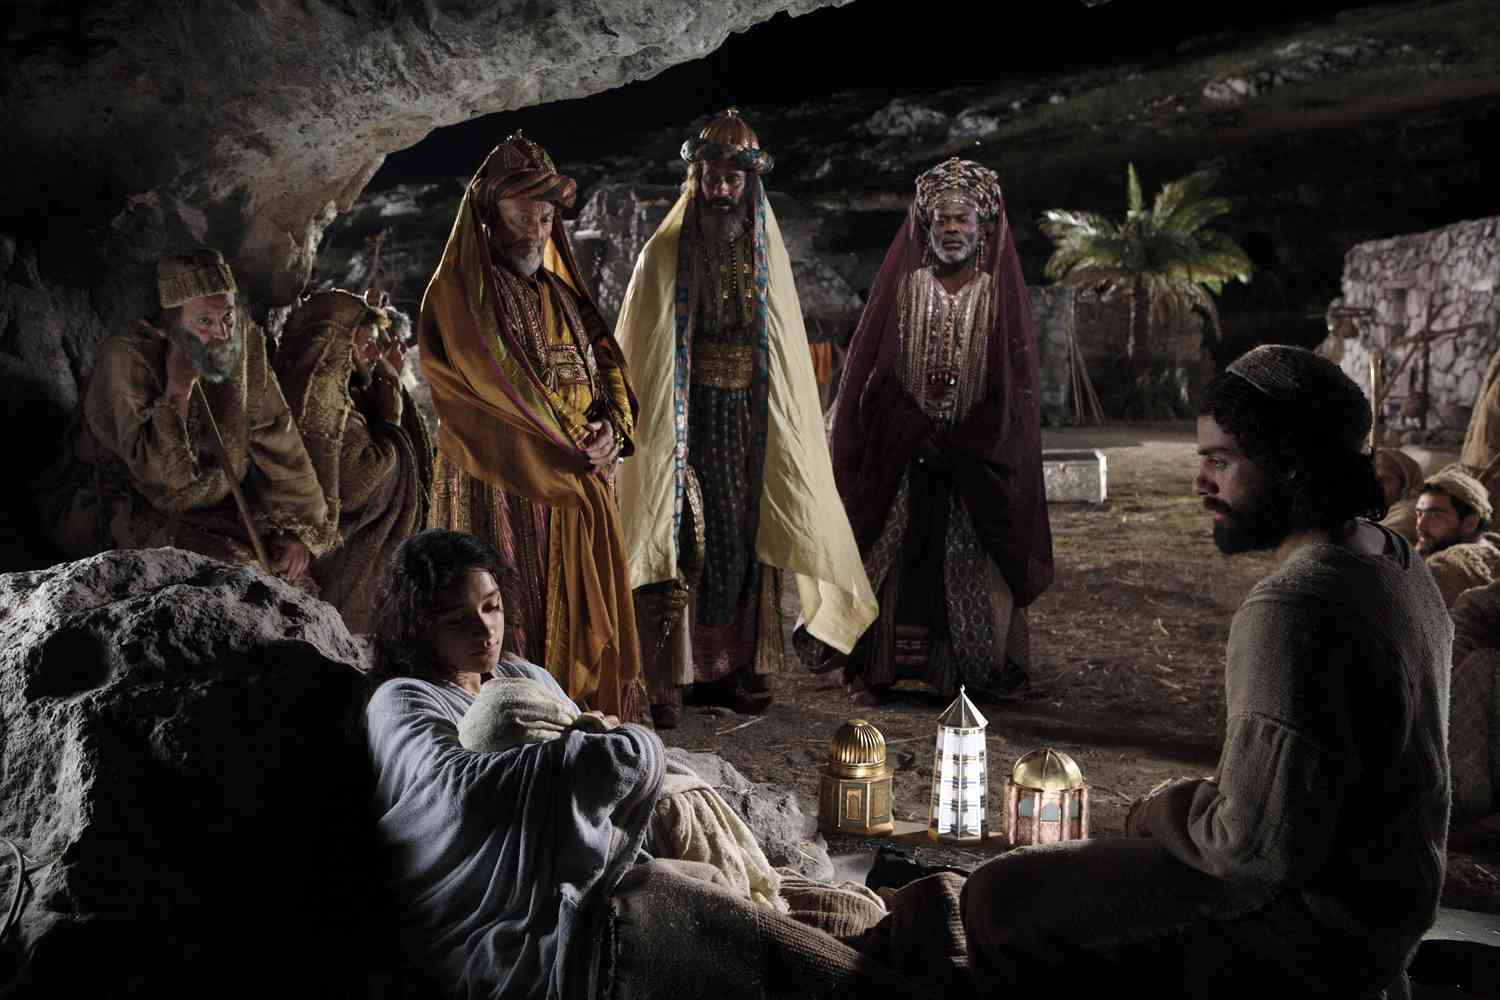 3 Wise Men Gifts For Christmas: LOVING PEOPLE WHO ARE DIFFERENT « Abidan Paul Shah